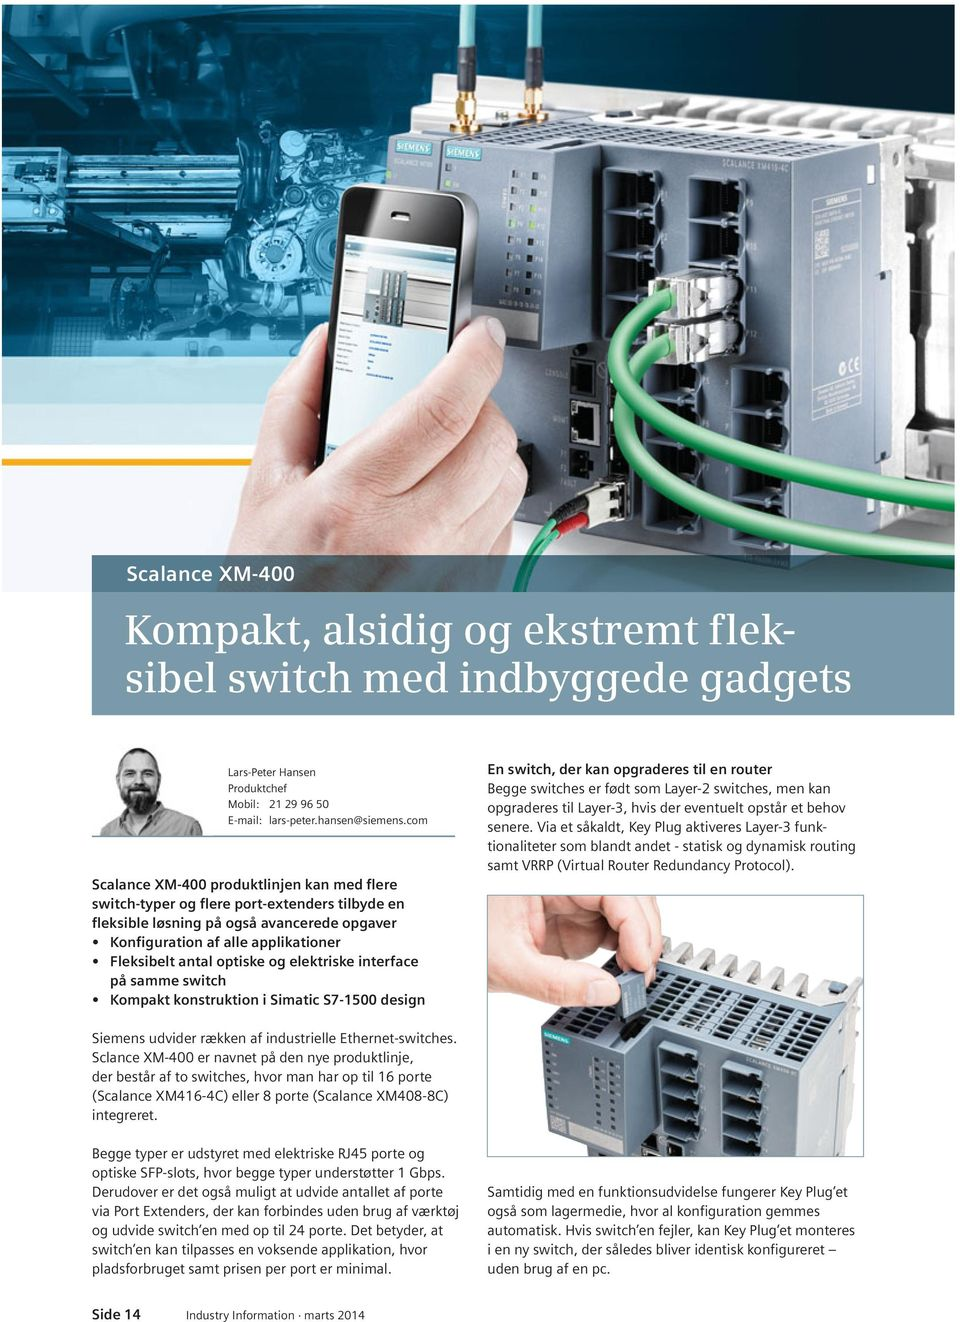 optiske og elektriske interface på samme switch Kompakt konstruktion i Simatic S7-1500 design En switch, der kan opgraderes til en router Begge switches er født som Layer-2 switches, men kan